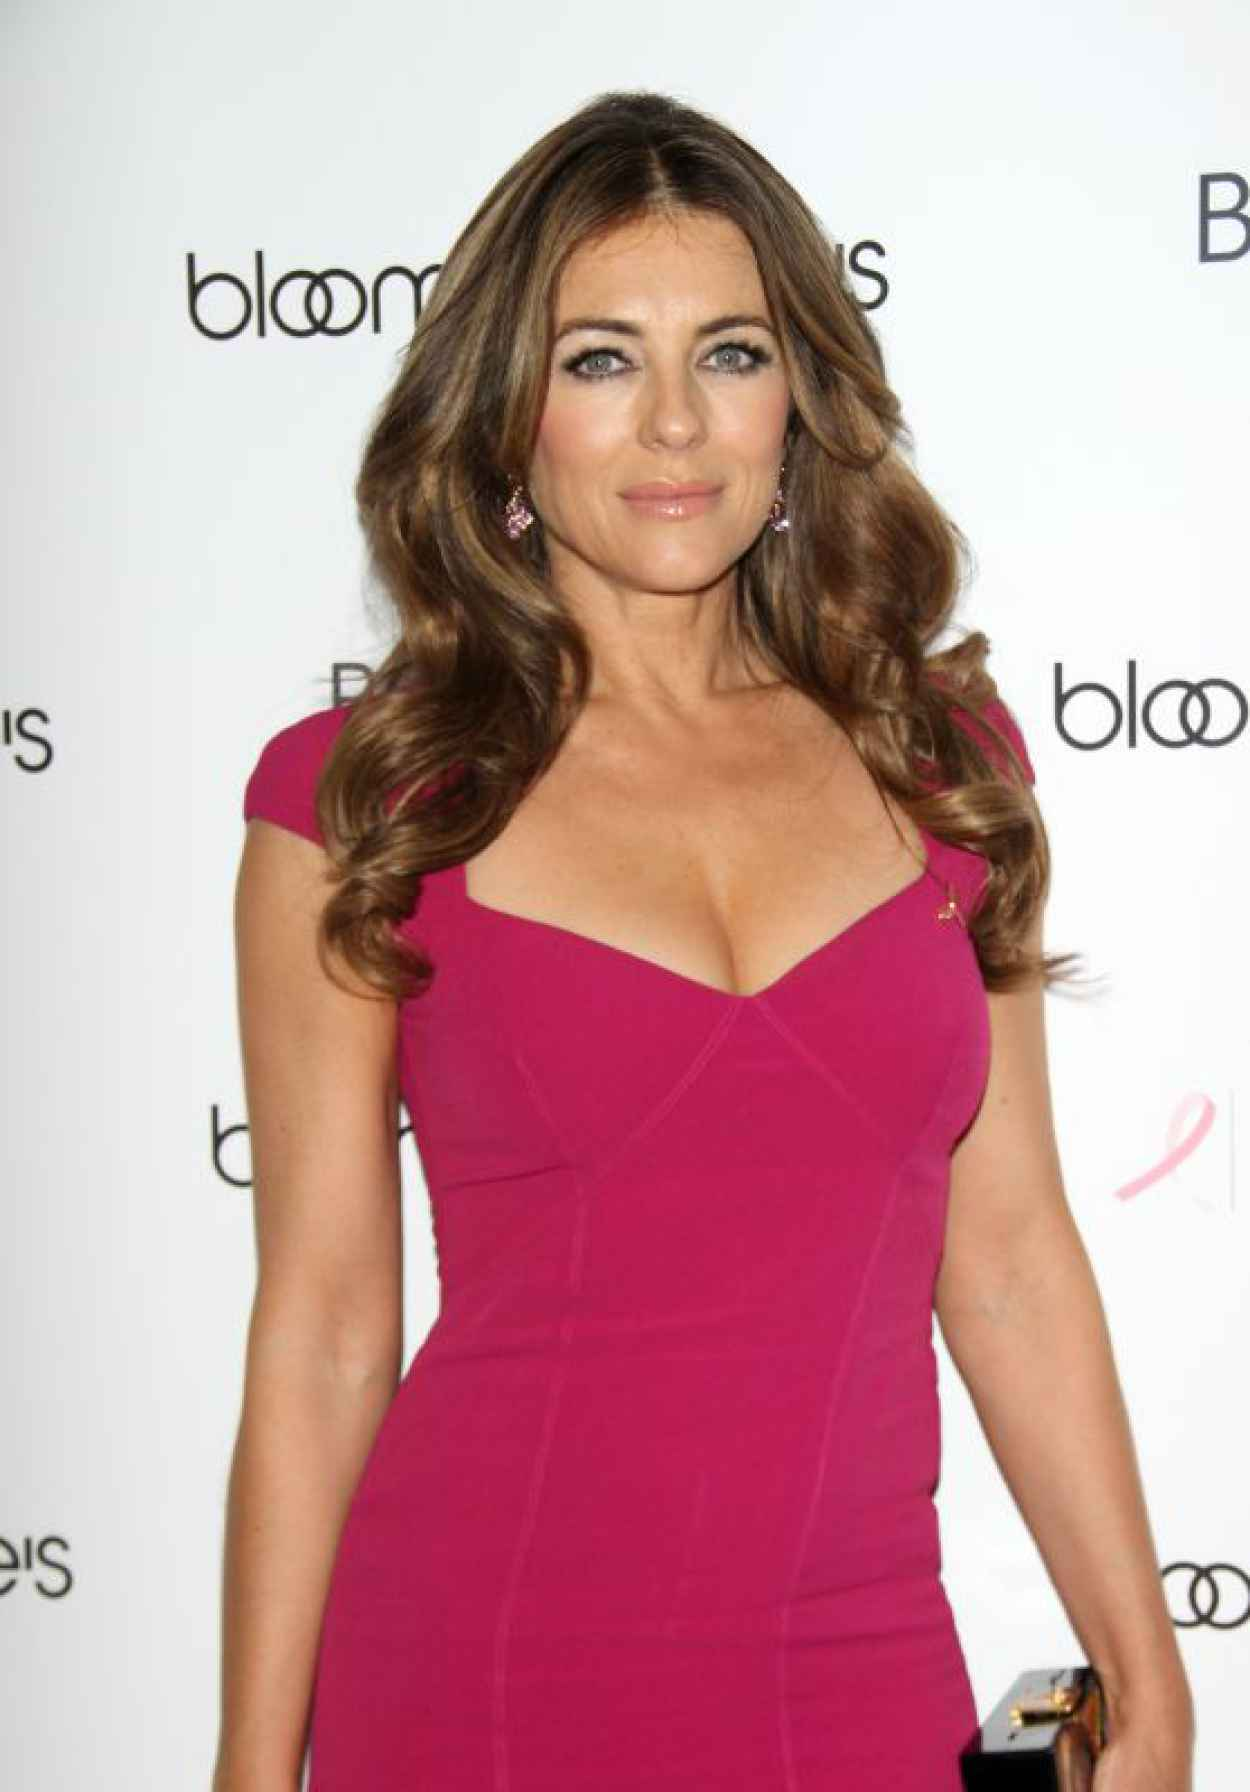 Elizabeth Hurley - Estee Lauder Breast Cancer Awareness Campaign in New York City-1